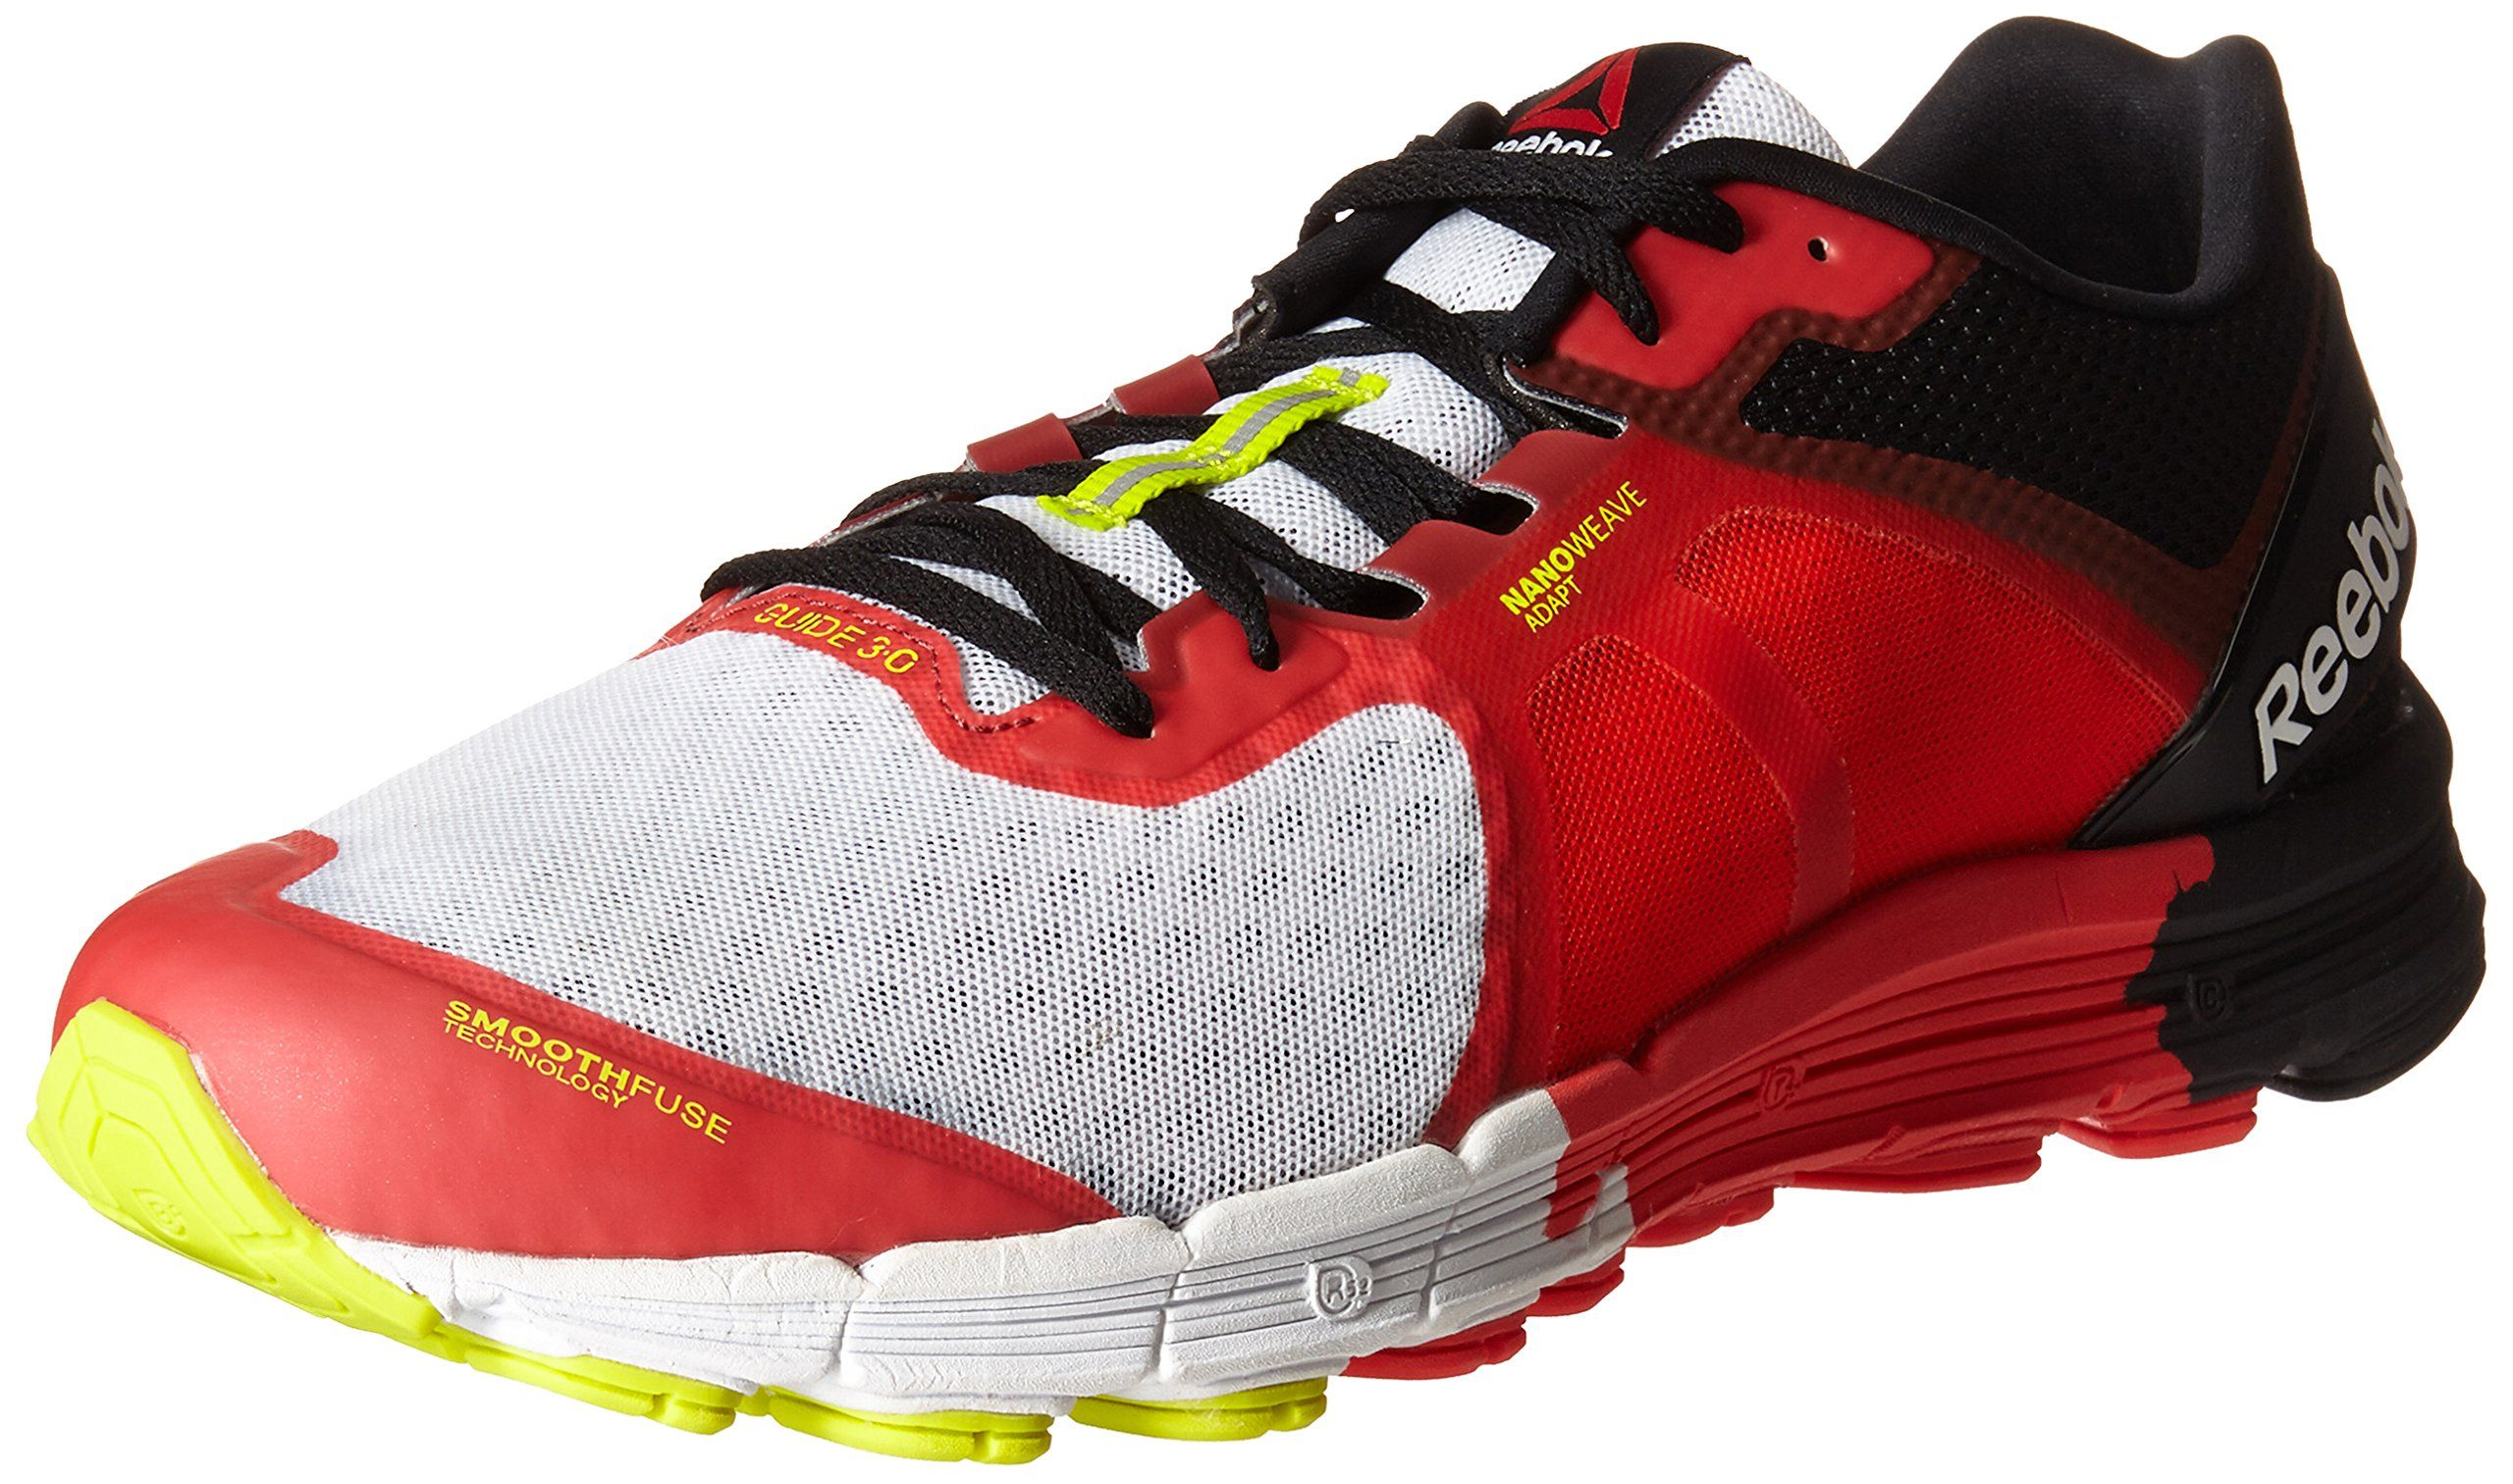 Chaussures de running one guide 3.0